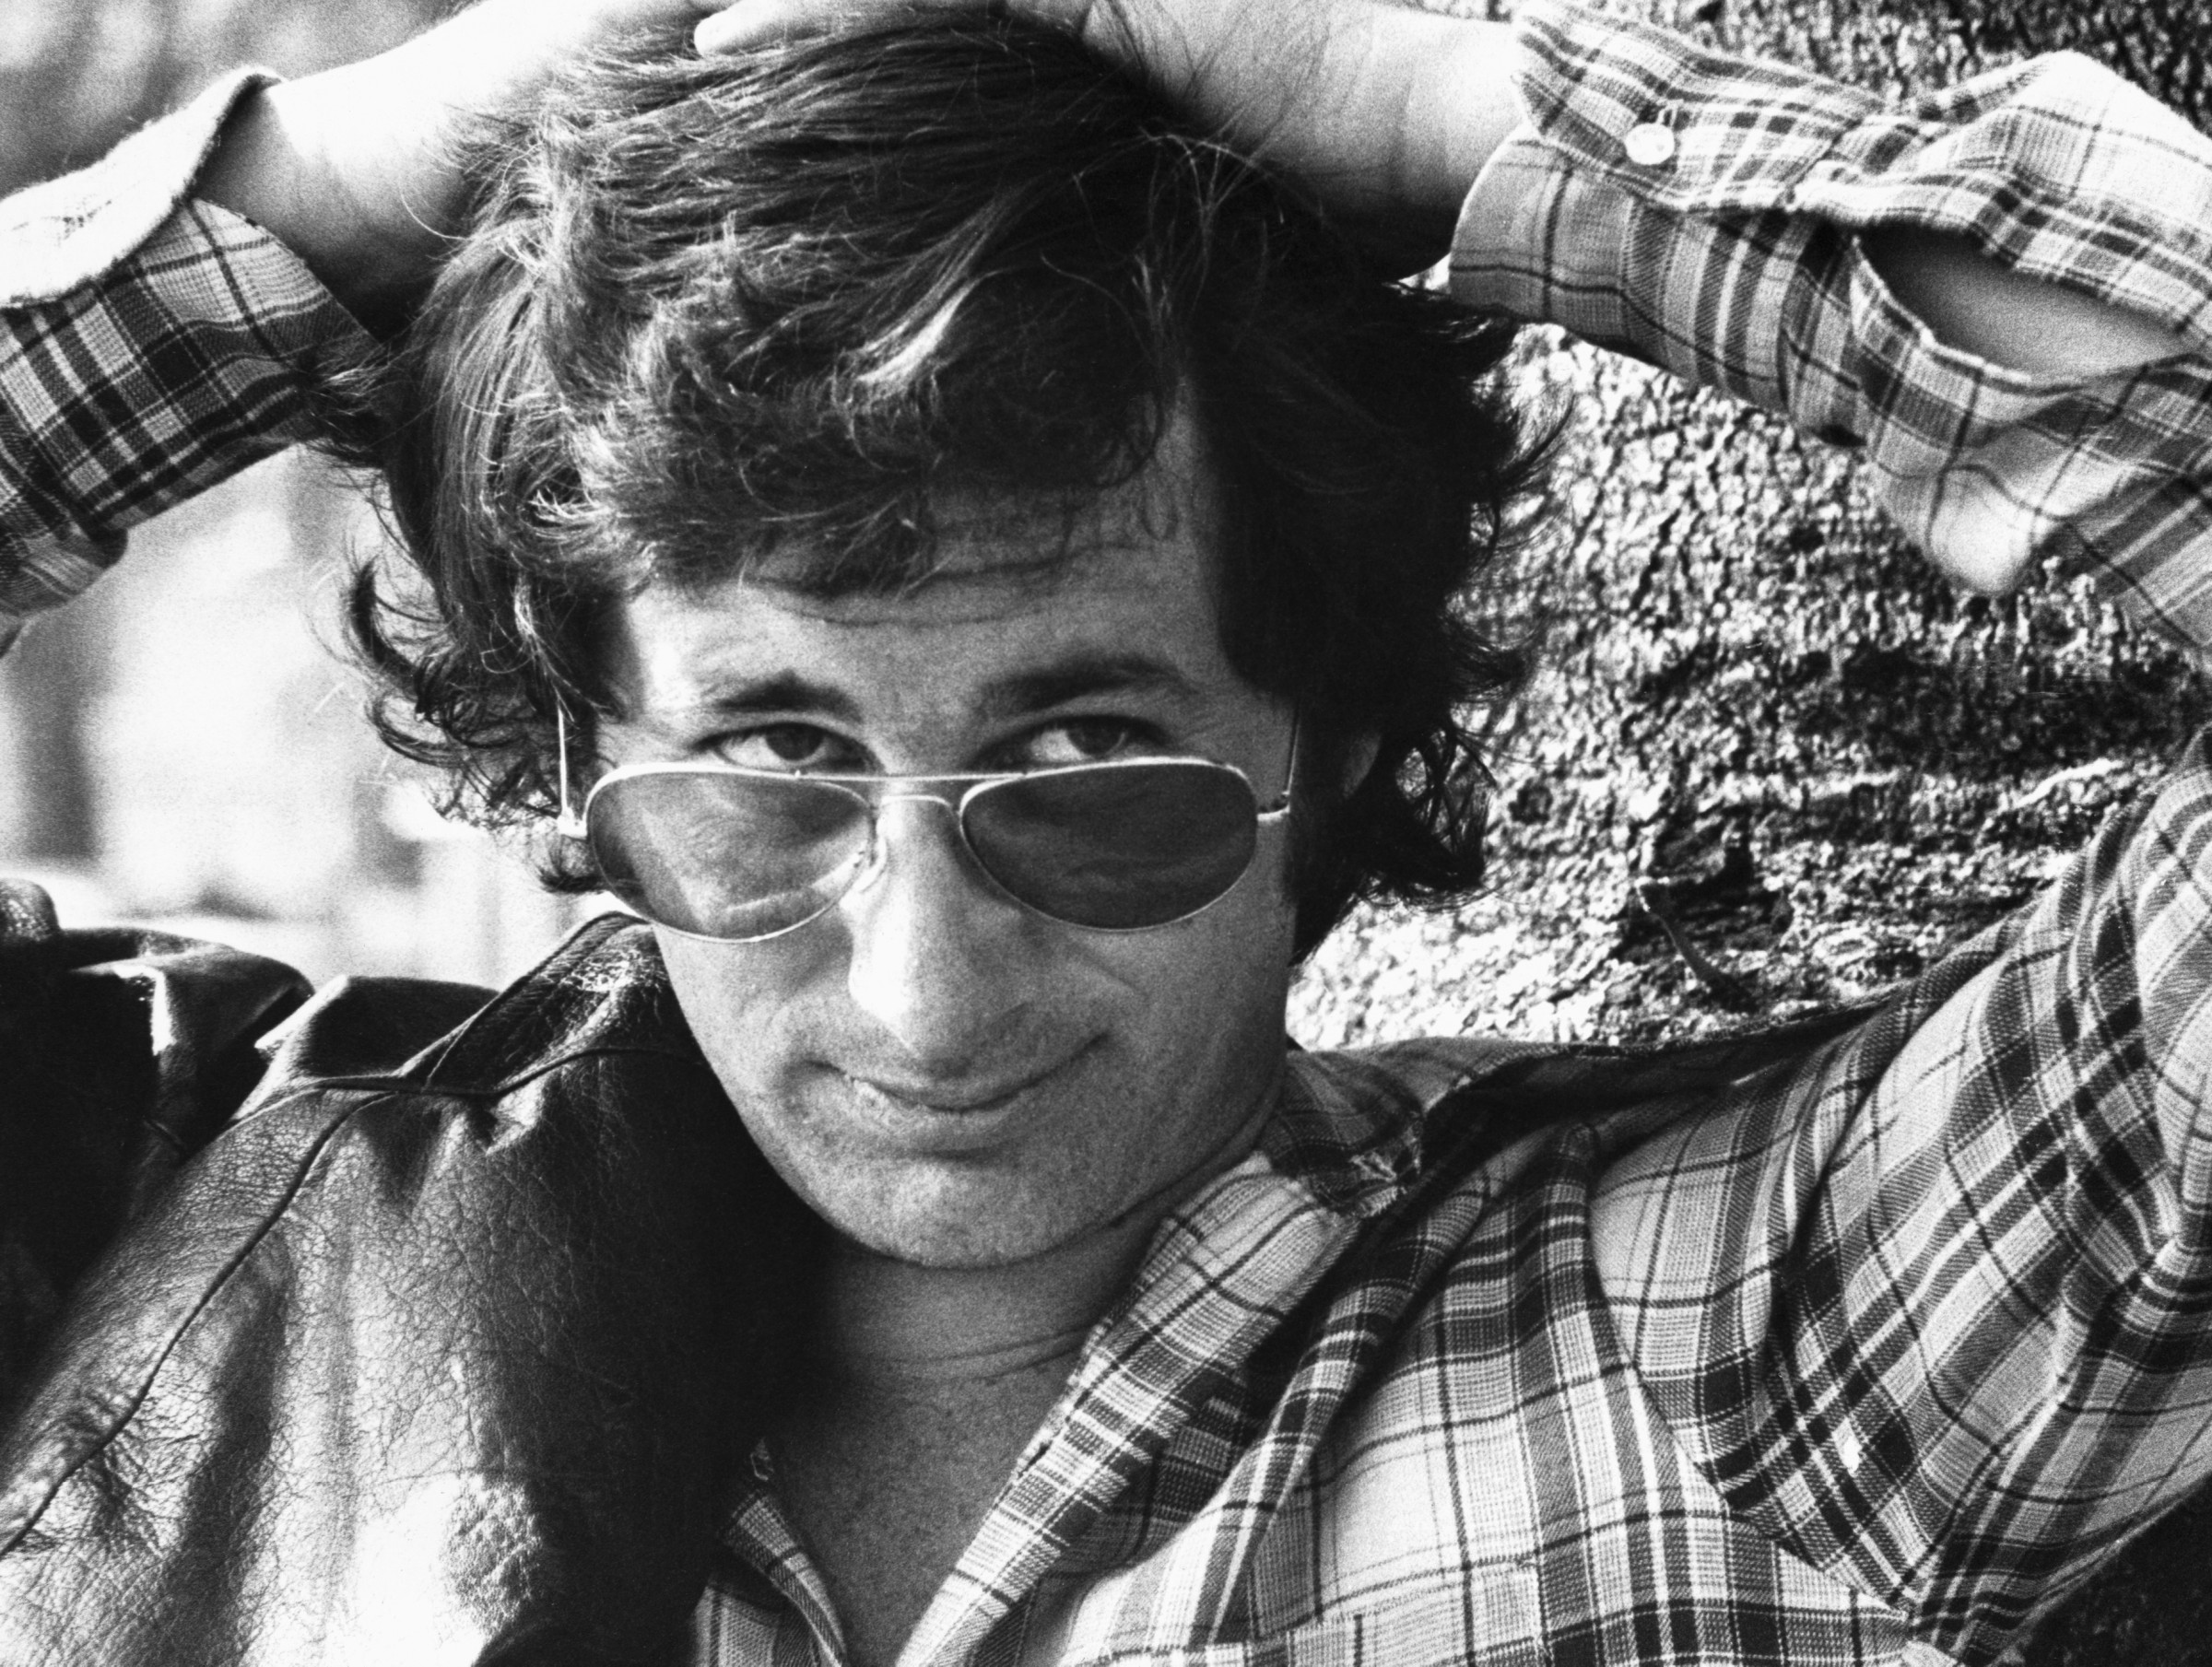 1973, London, England, UK --- Film Director Stephen Spielberg, 1973 --- Image by © Hulton-Deutsch Collection/CORBIS